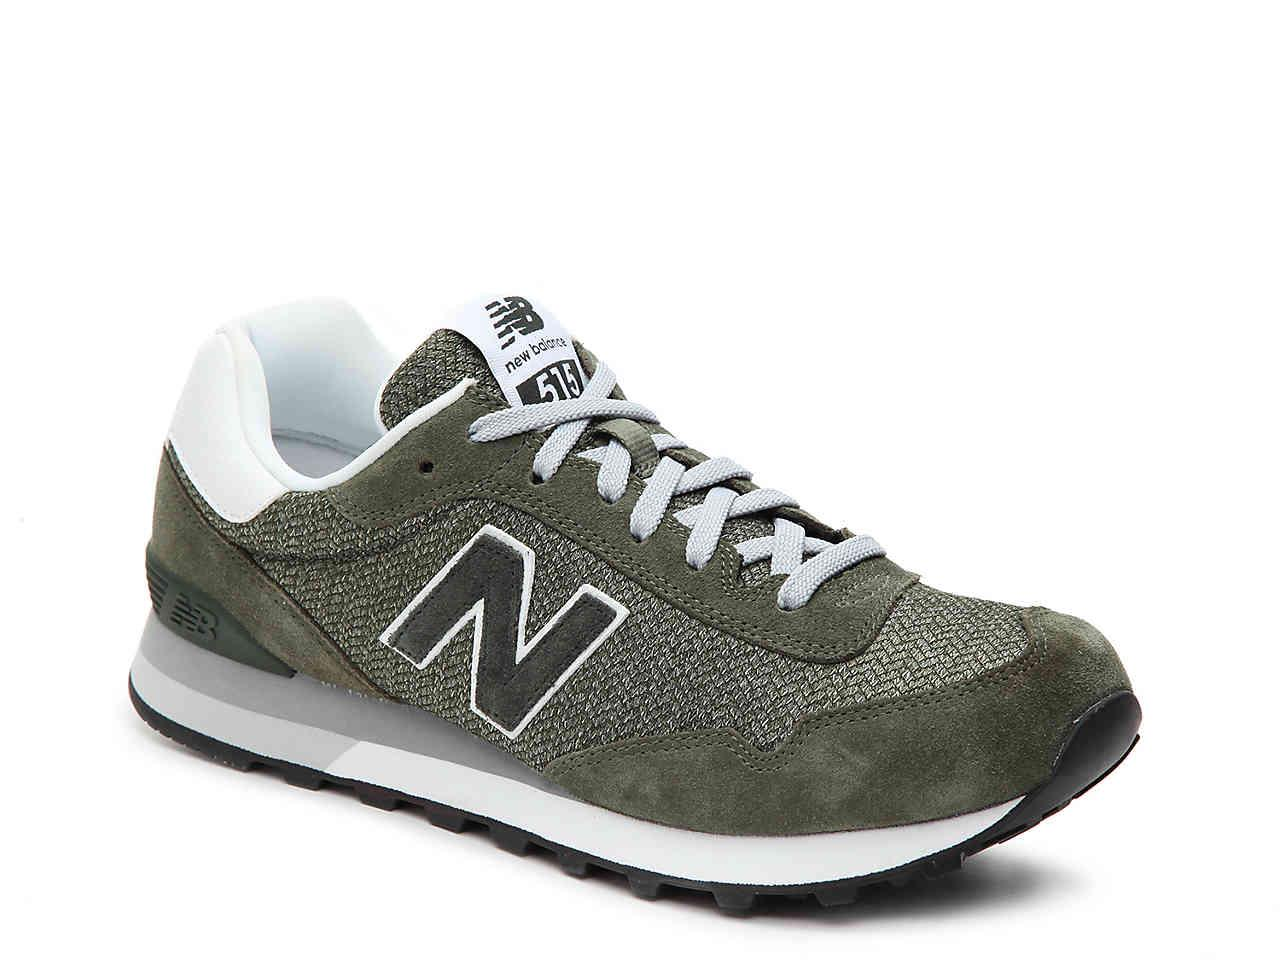 New Balance Suede 515 Retro Sneaker in Olive Green/White (Green ...